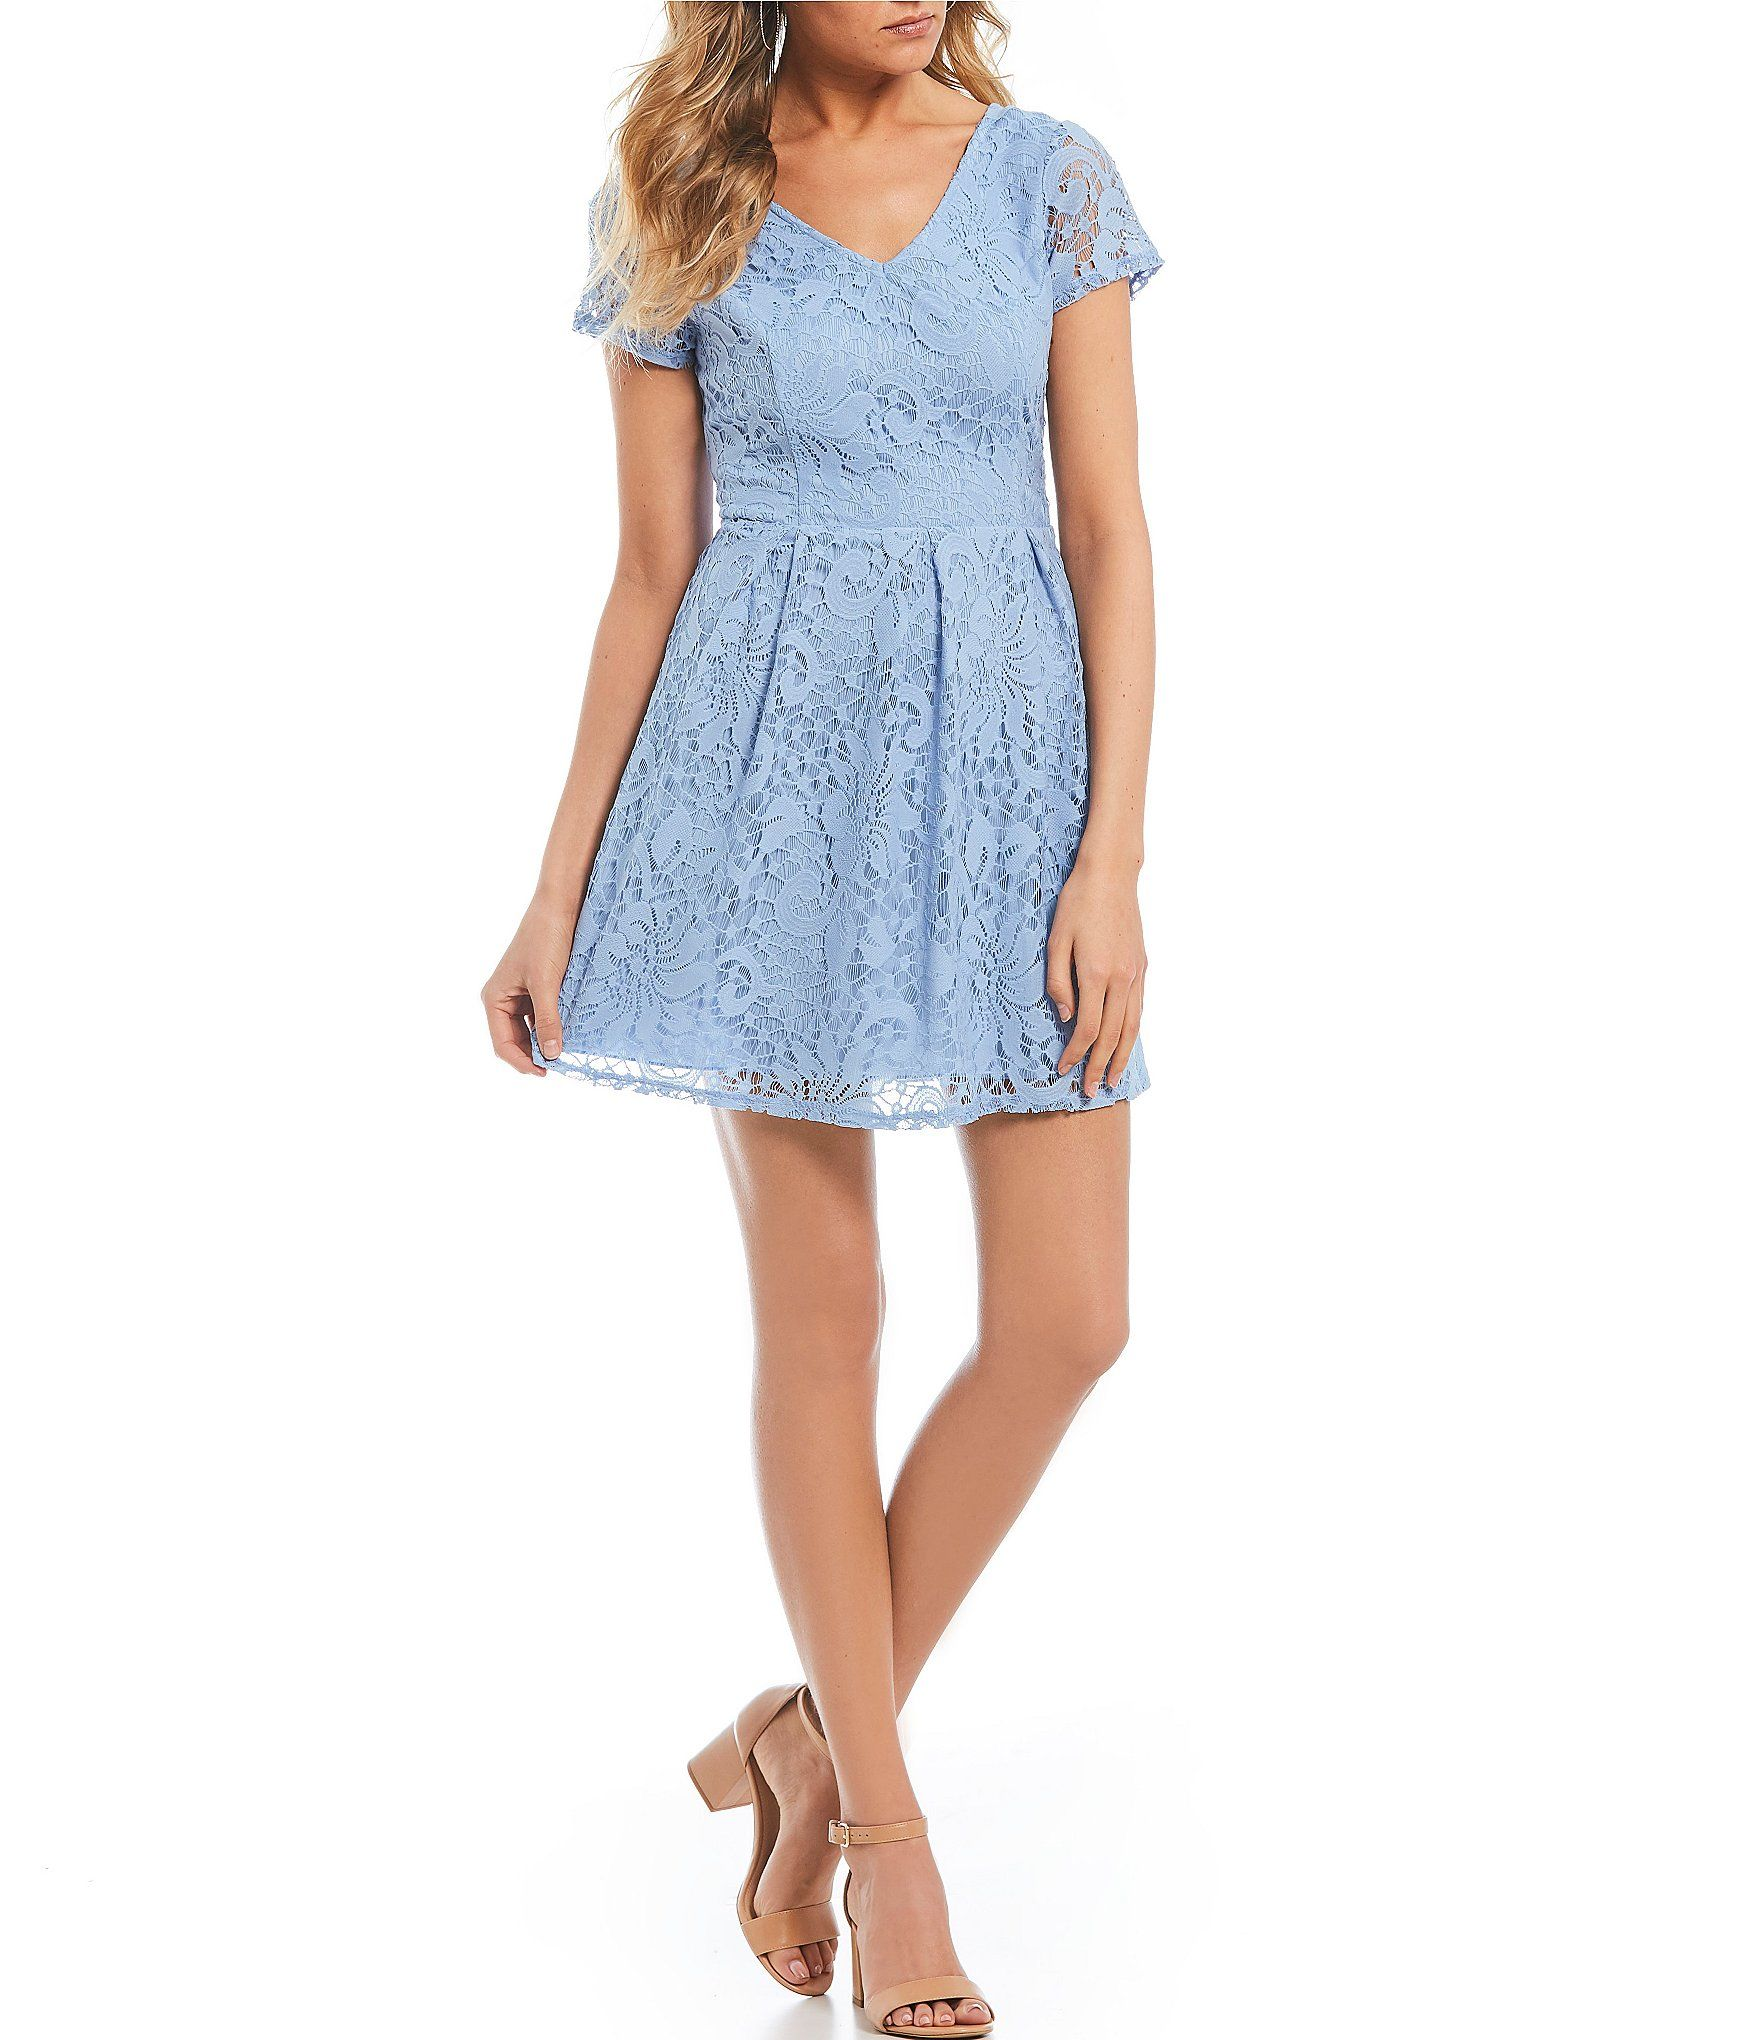 d6f585bb230 Shop for Xtraordinary Short Sleeve Lace Bow Back Dress at Dillards.com.  Visit Dillards.com to find clothing